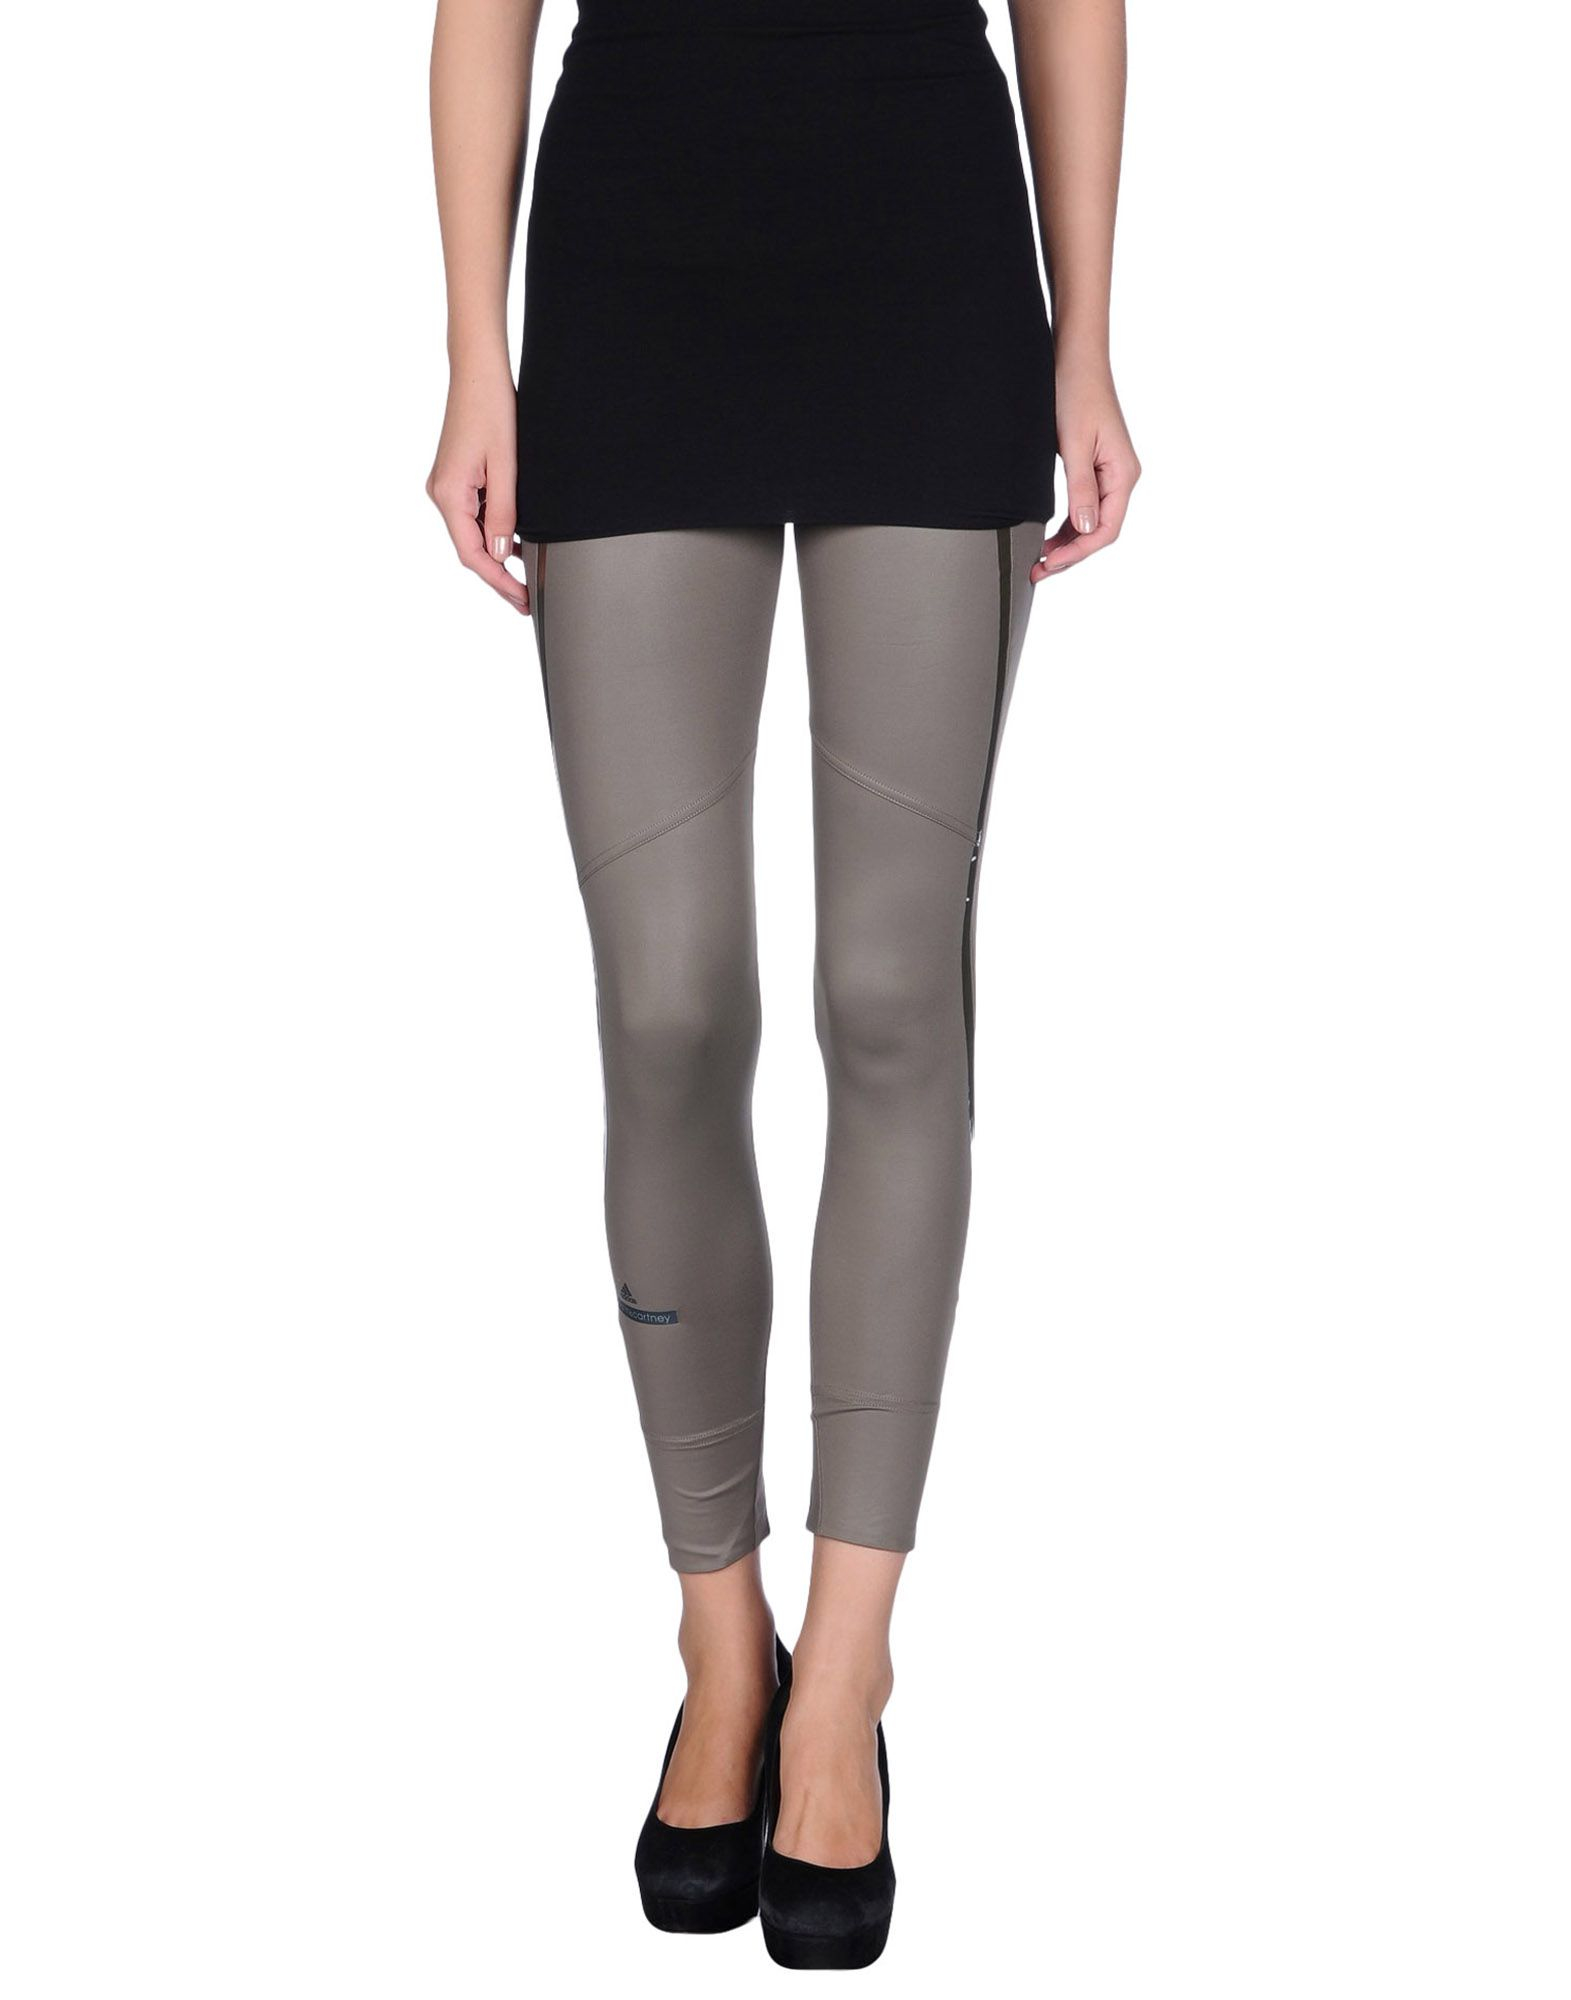 Adidas by stella mccartney Leggings in Natural